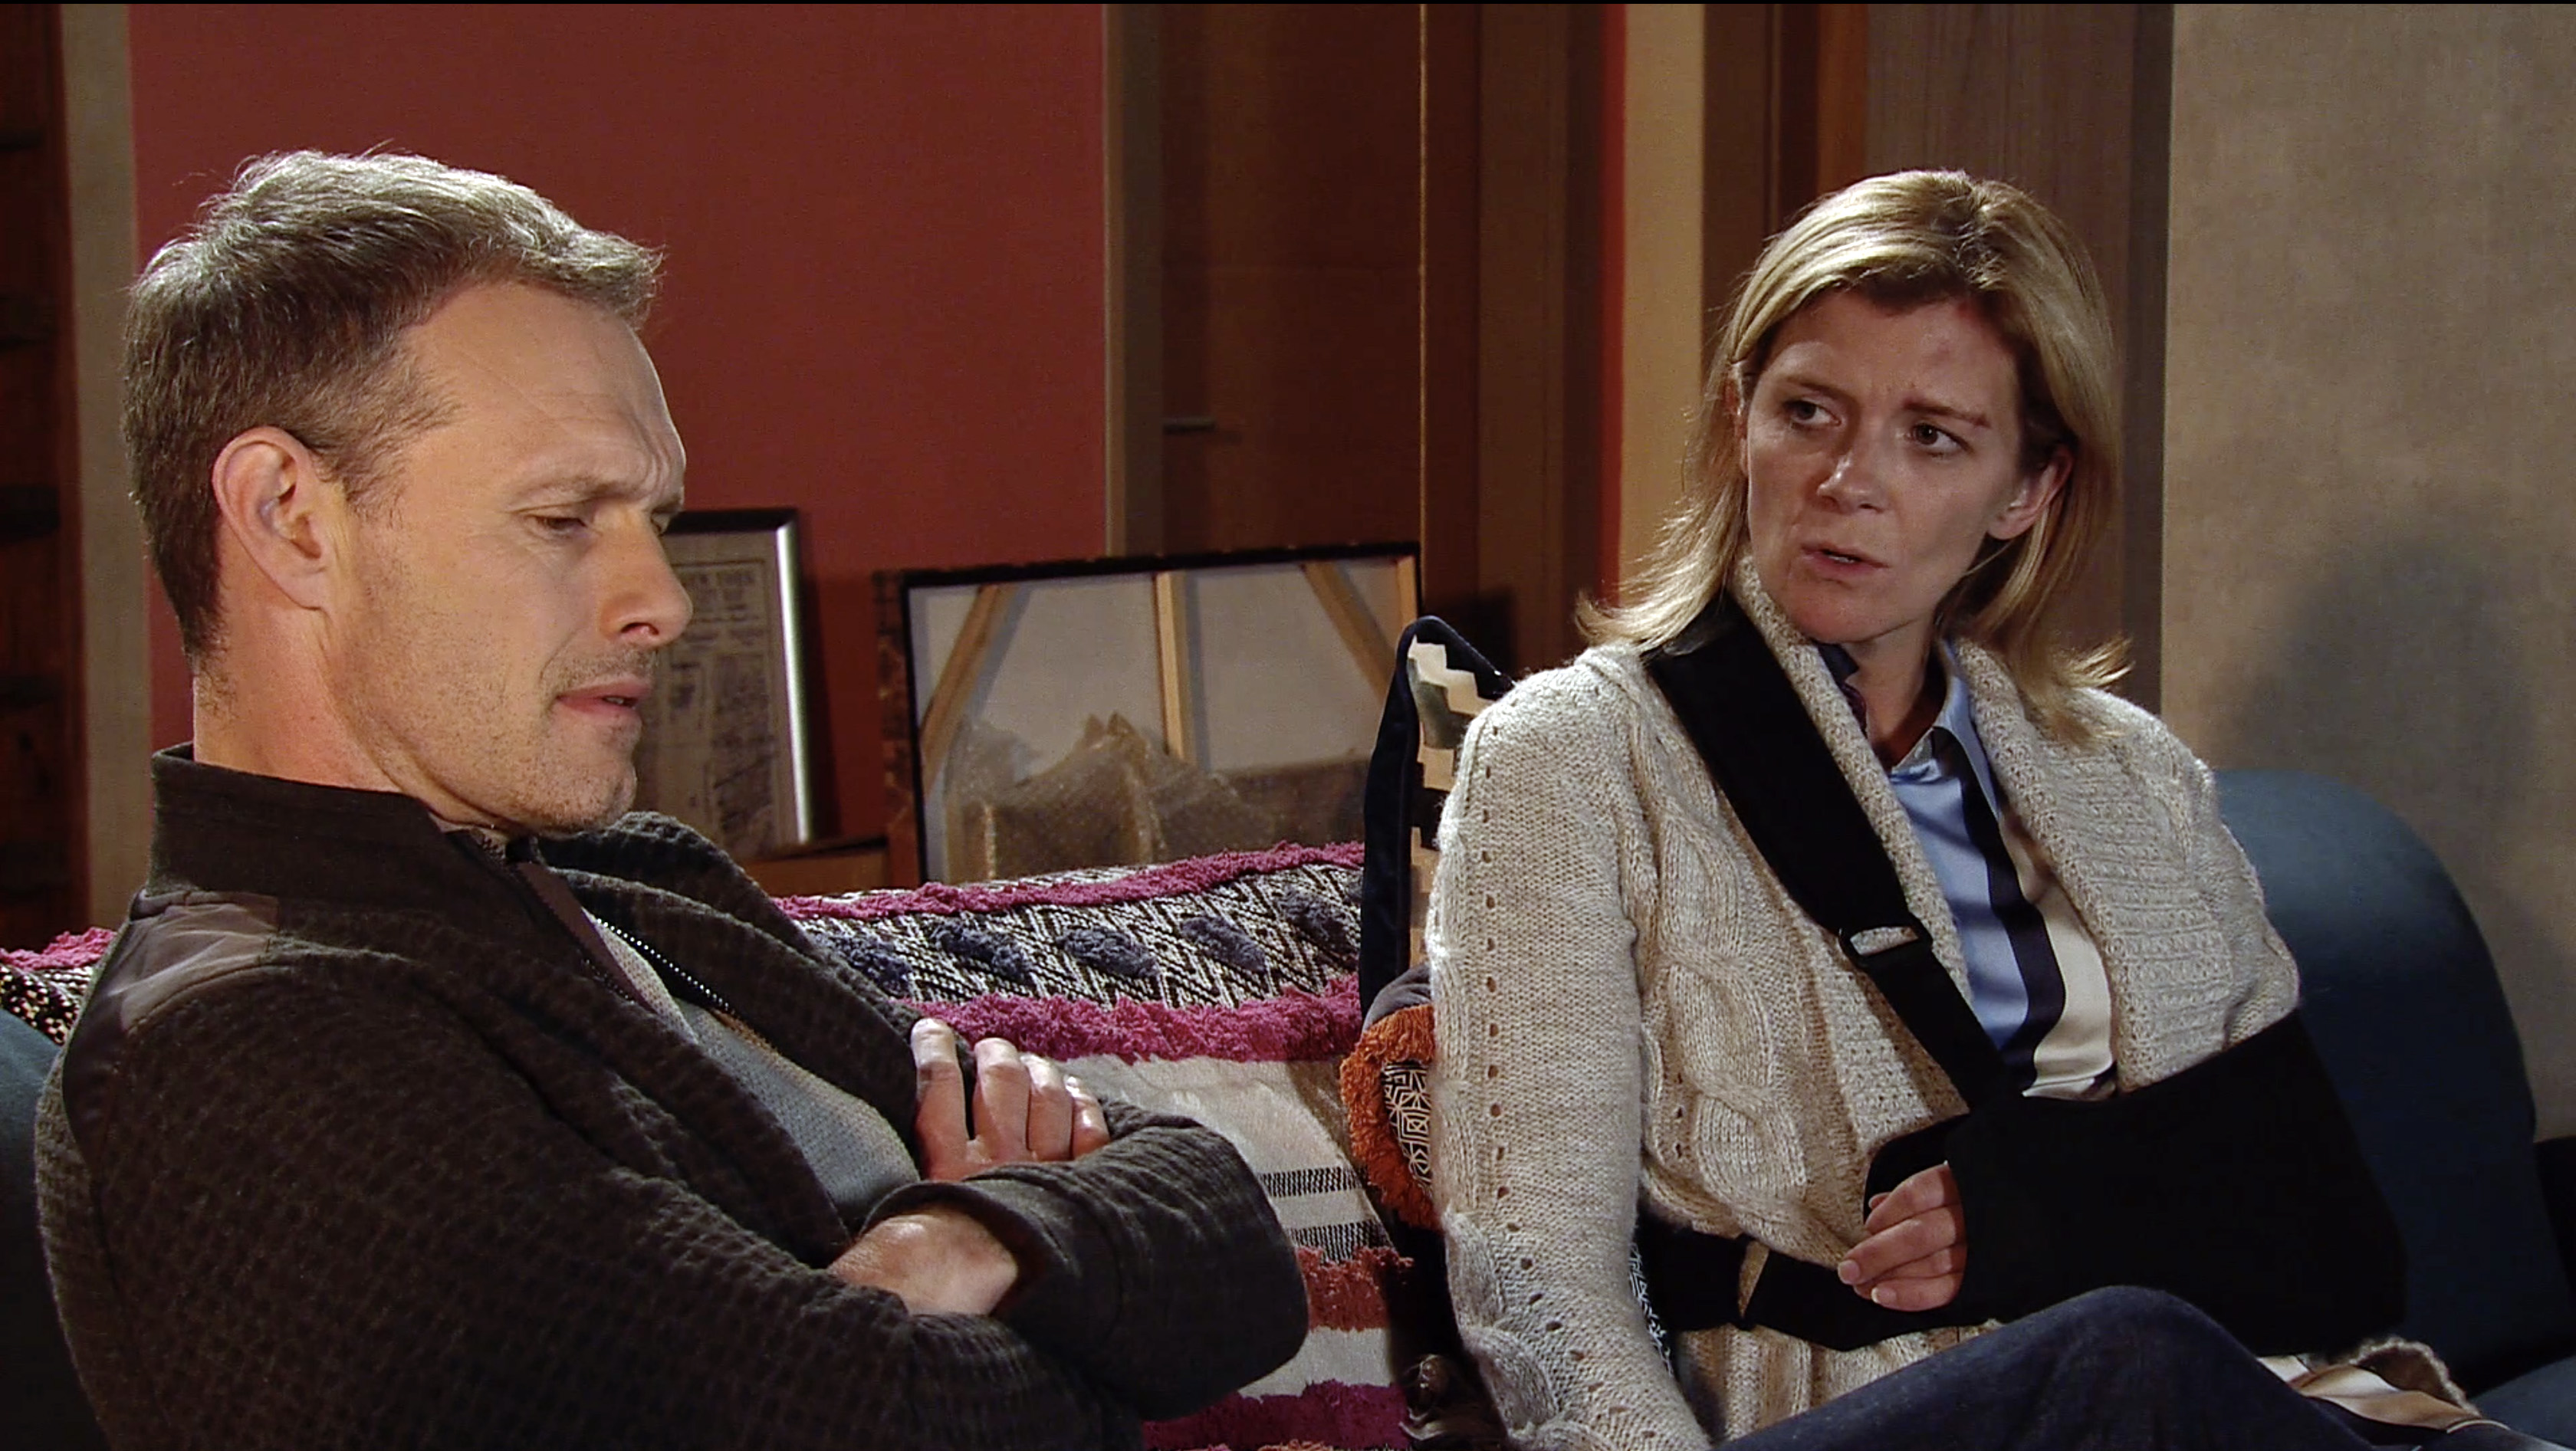 Nick and Leanne row in Coronation Street